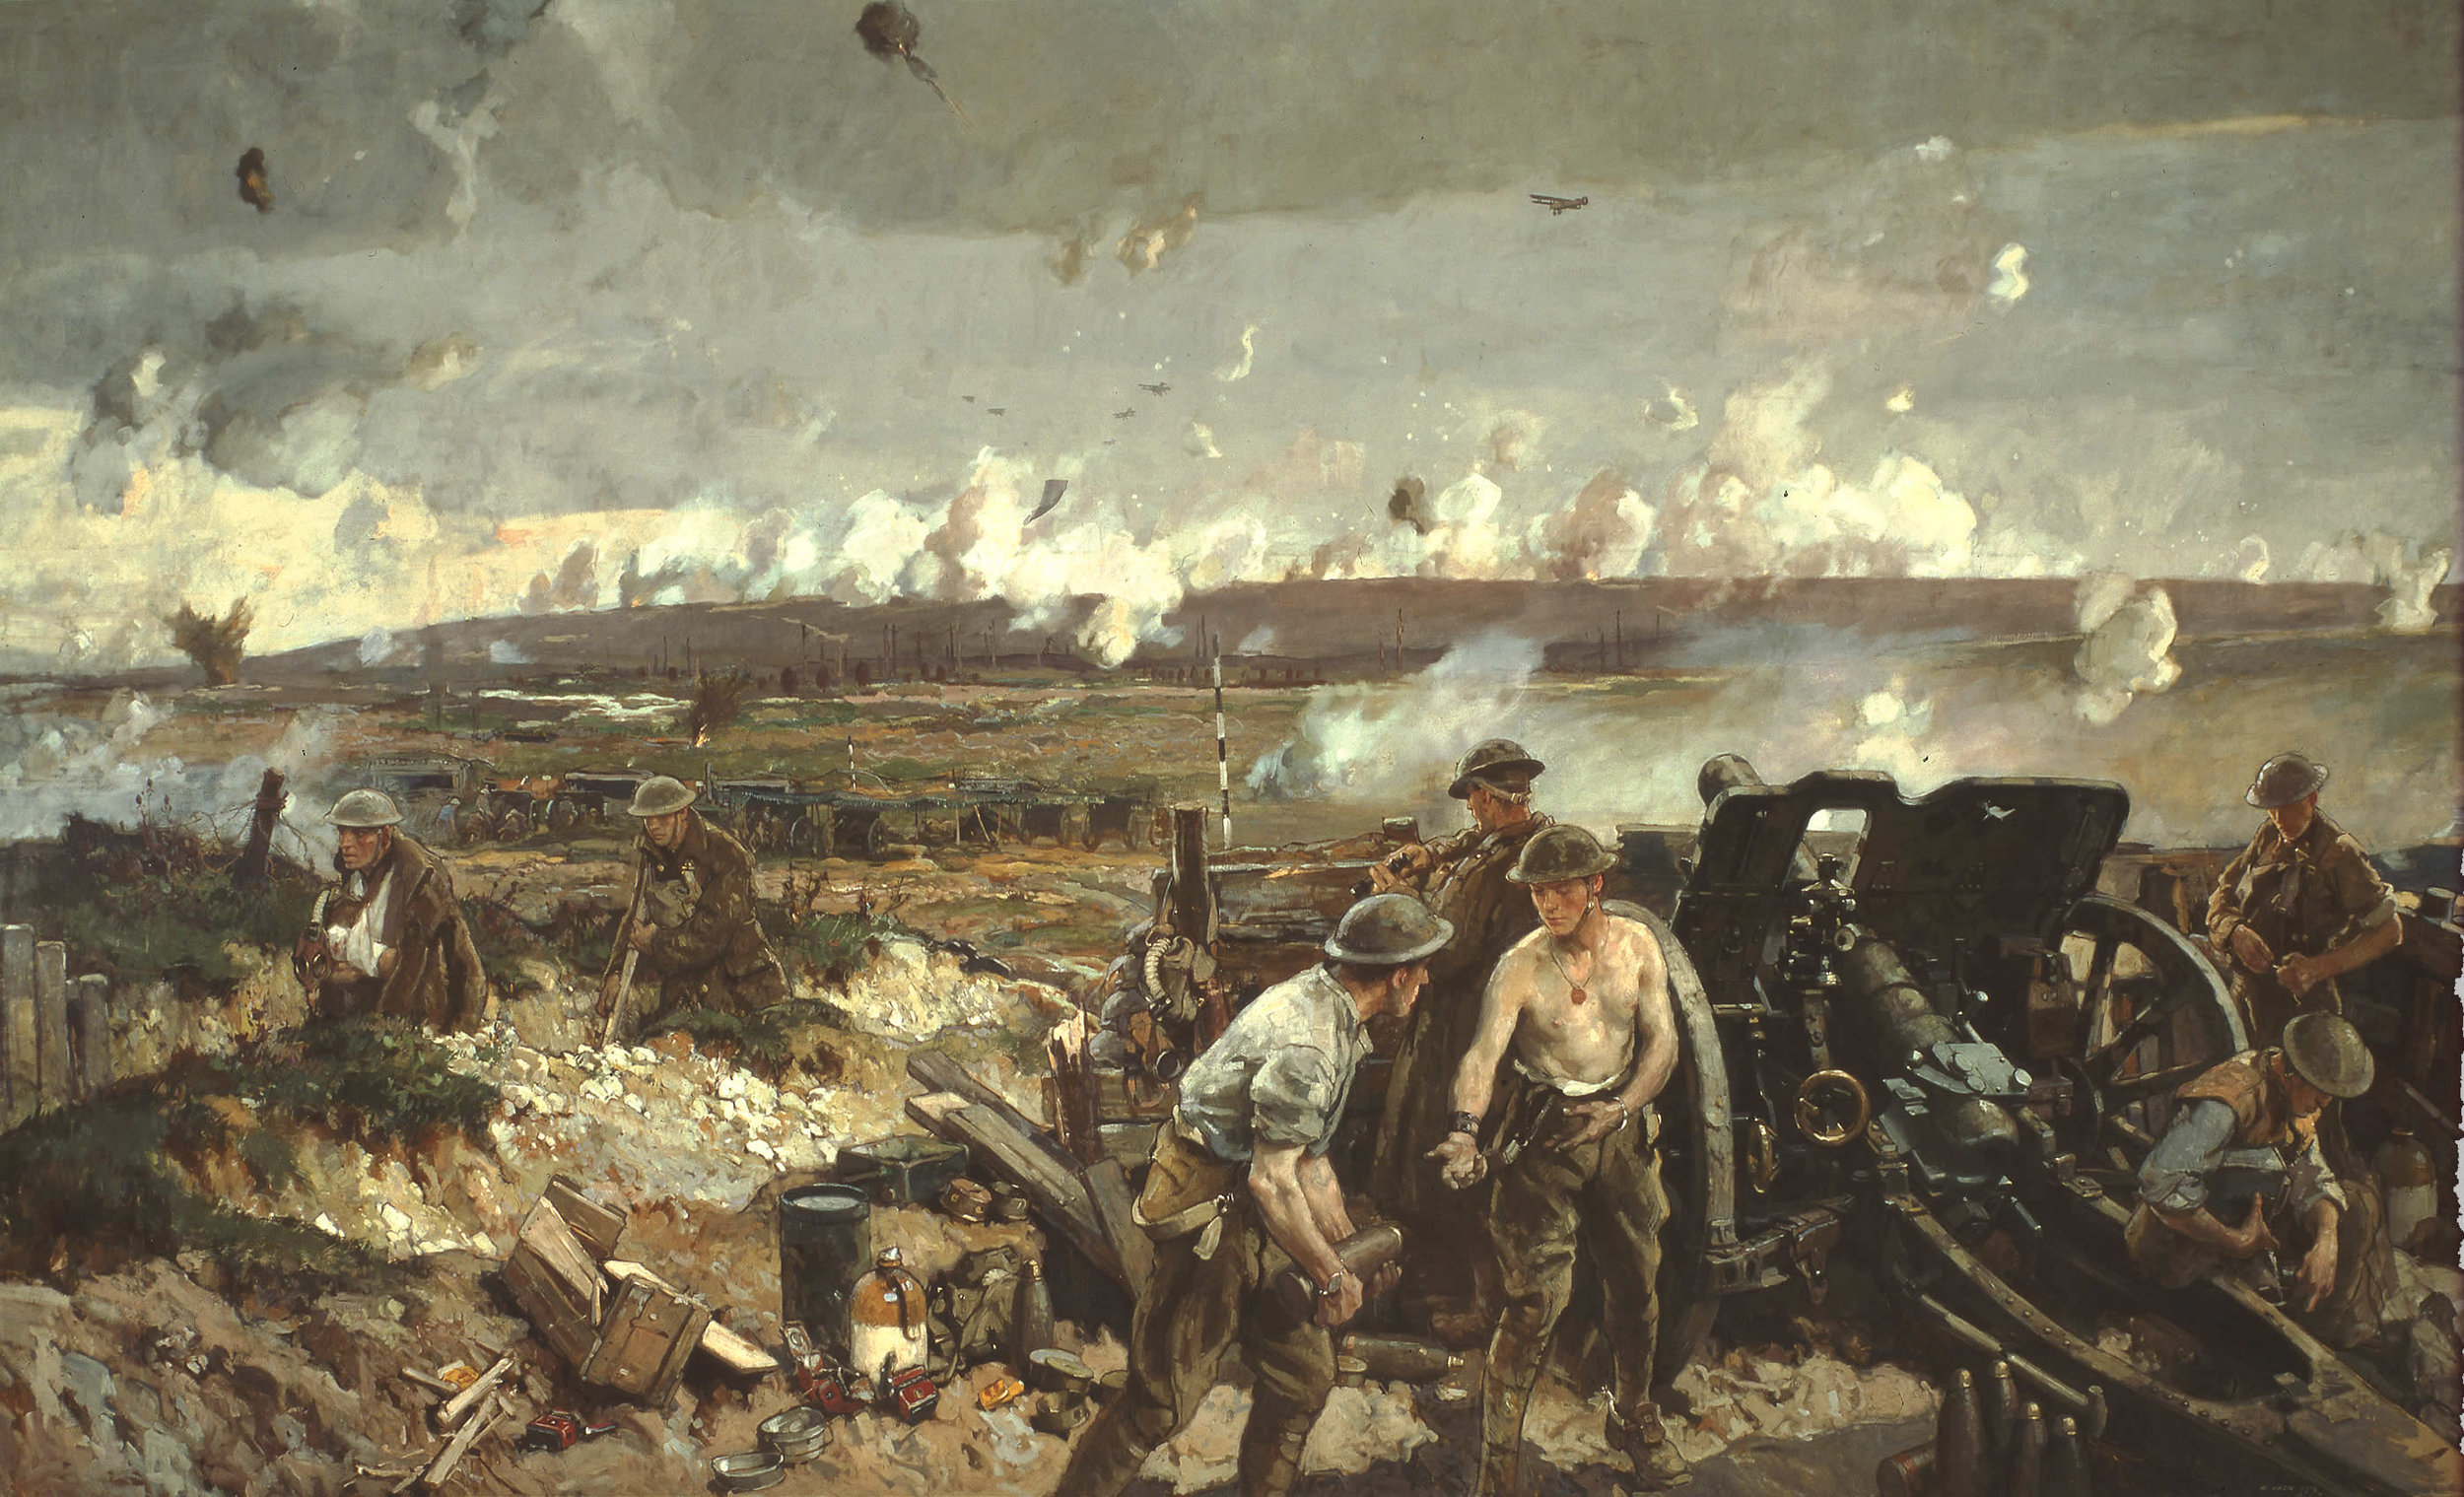 """""""The Taking of Vimy Ridge, Easter Monday 1917."""" Richard Jack was the first Canadian official war artist, appointed in 1916. In this painting, he depicts the crew of an 18-pounder field gun firing at German positions on Vimy Ridge. To the left, wounded soldiers move past the gun towards the rear. (painting by richard jack, beaverbrook collection of war art, cwm   19710261-0160  )"""